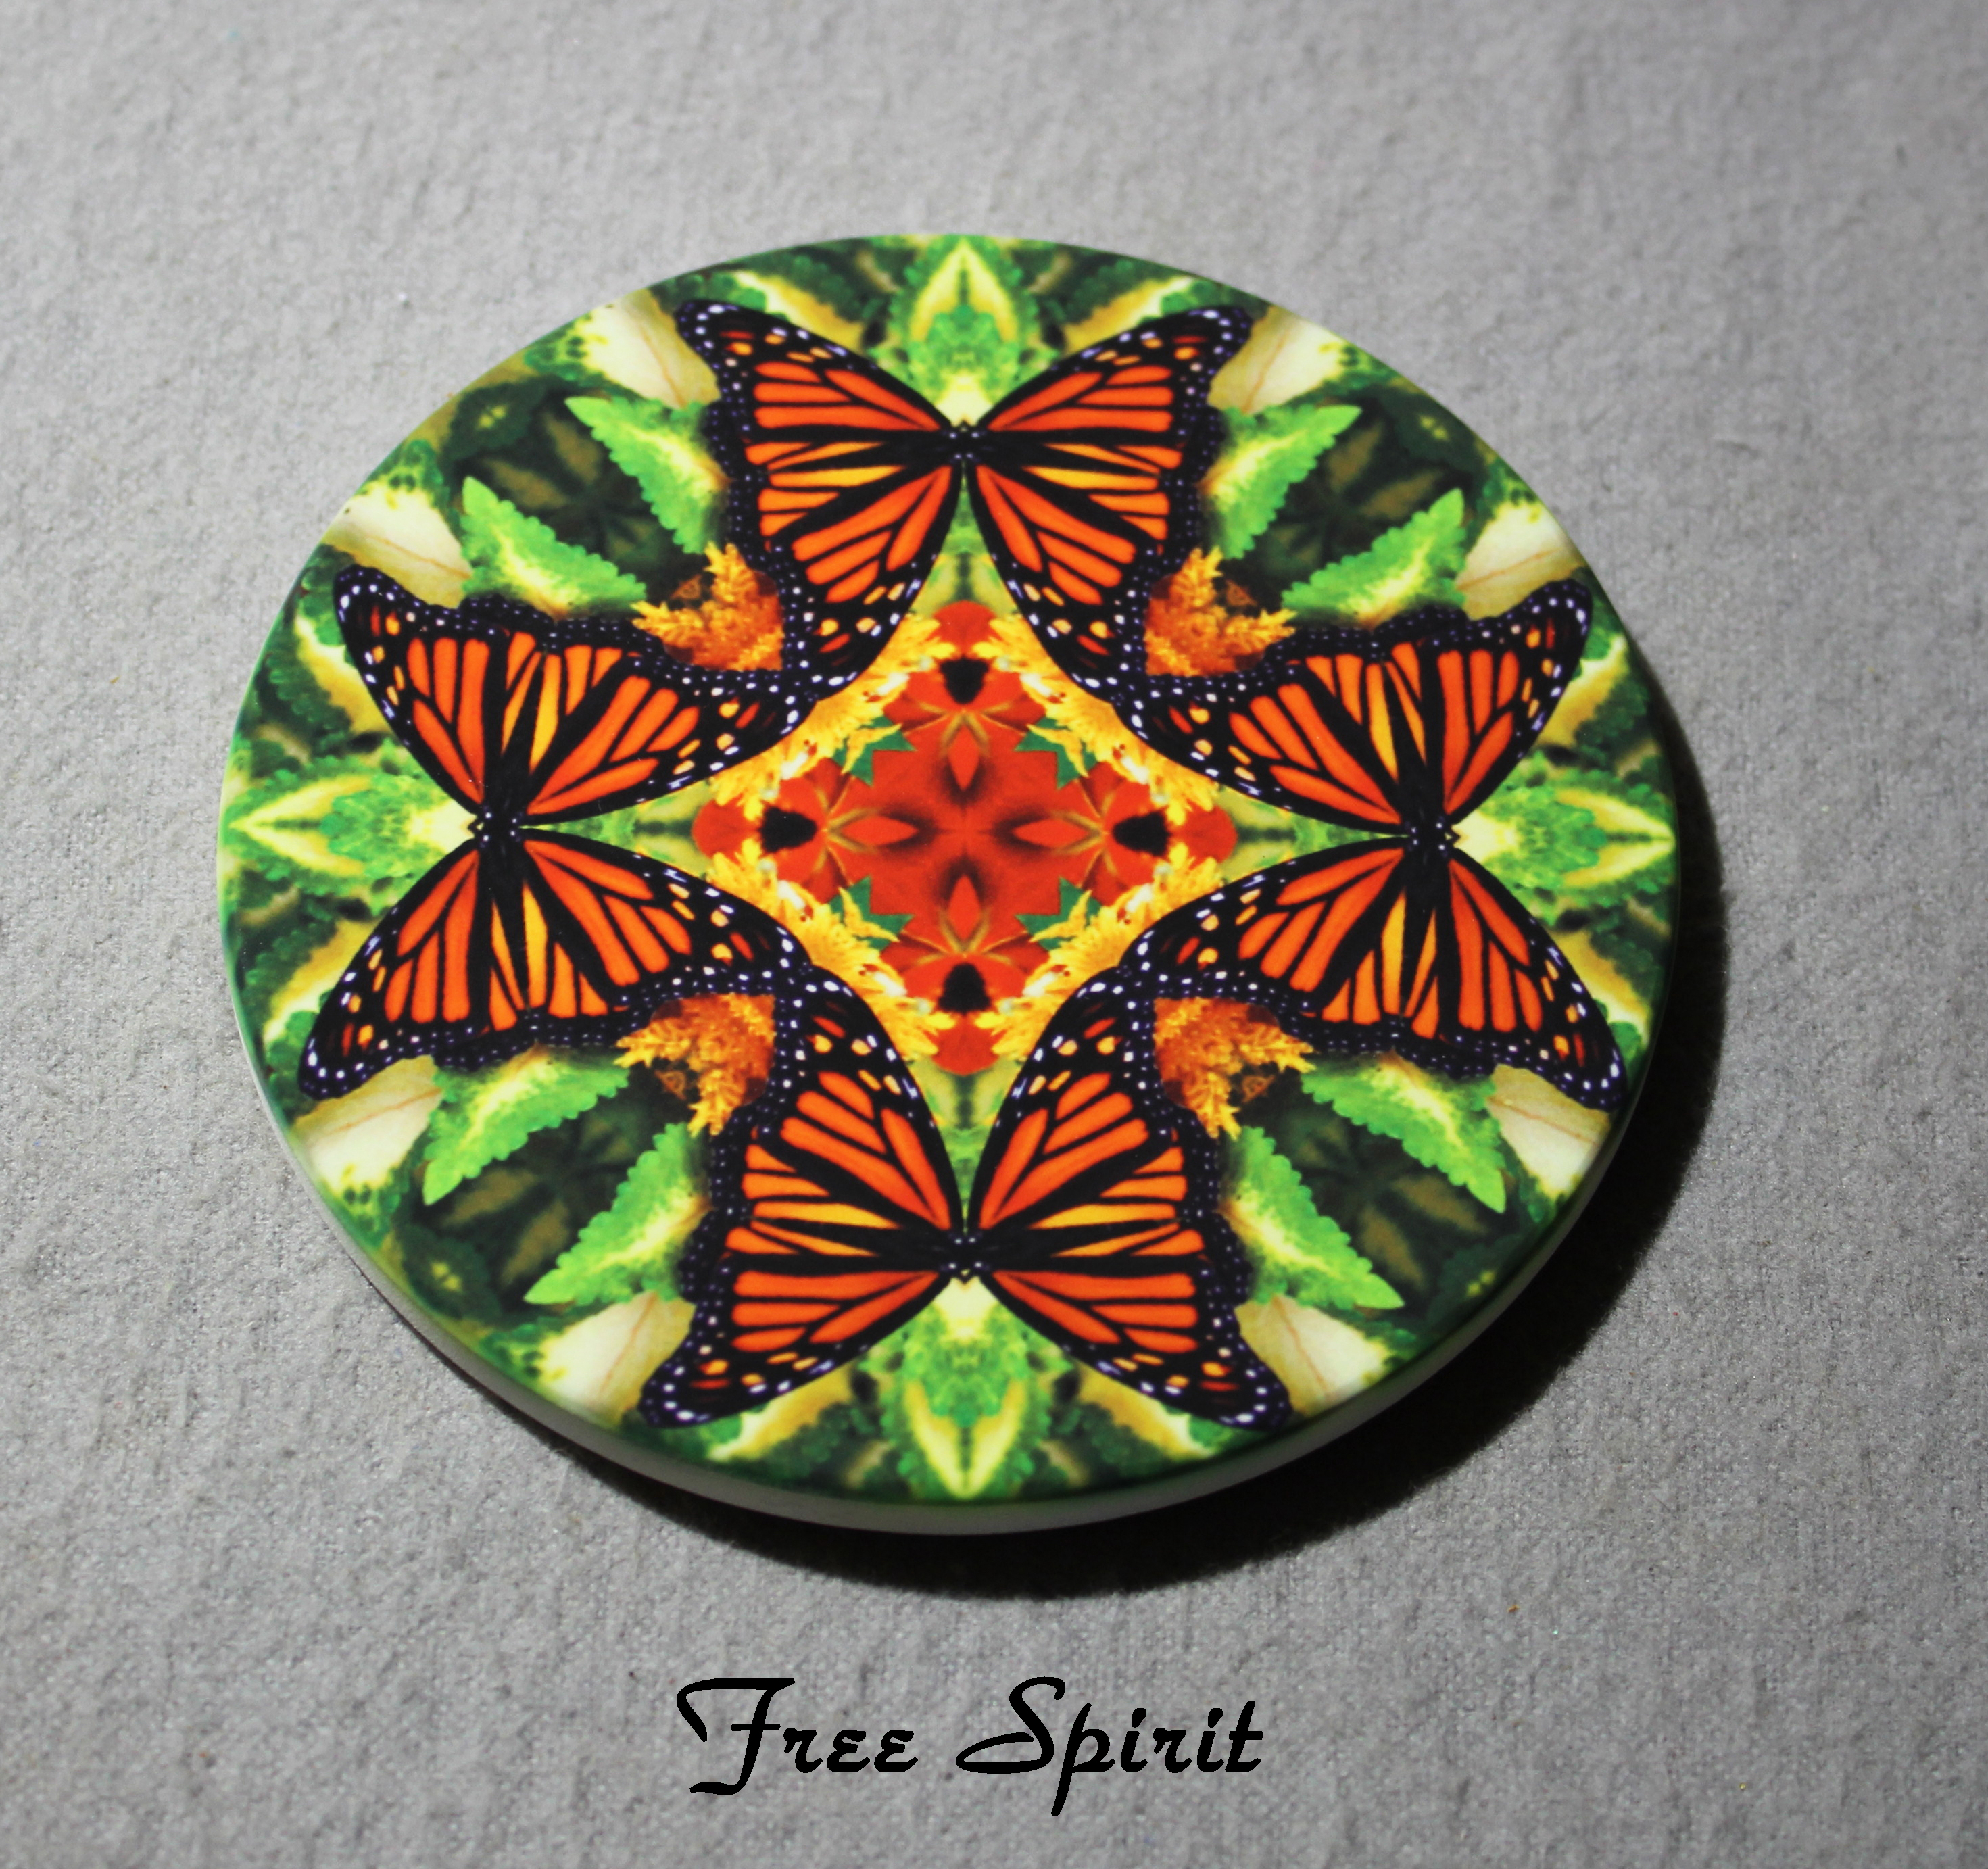 Coaster Drink Sandstone Custom Coasters Monarch Butterfly Nature Decor Free Spirit